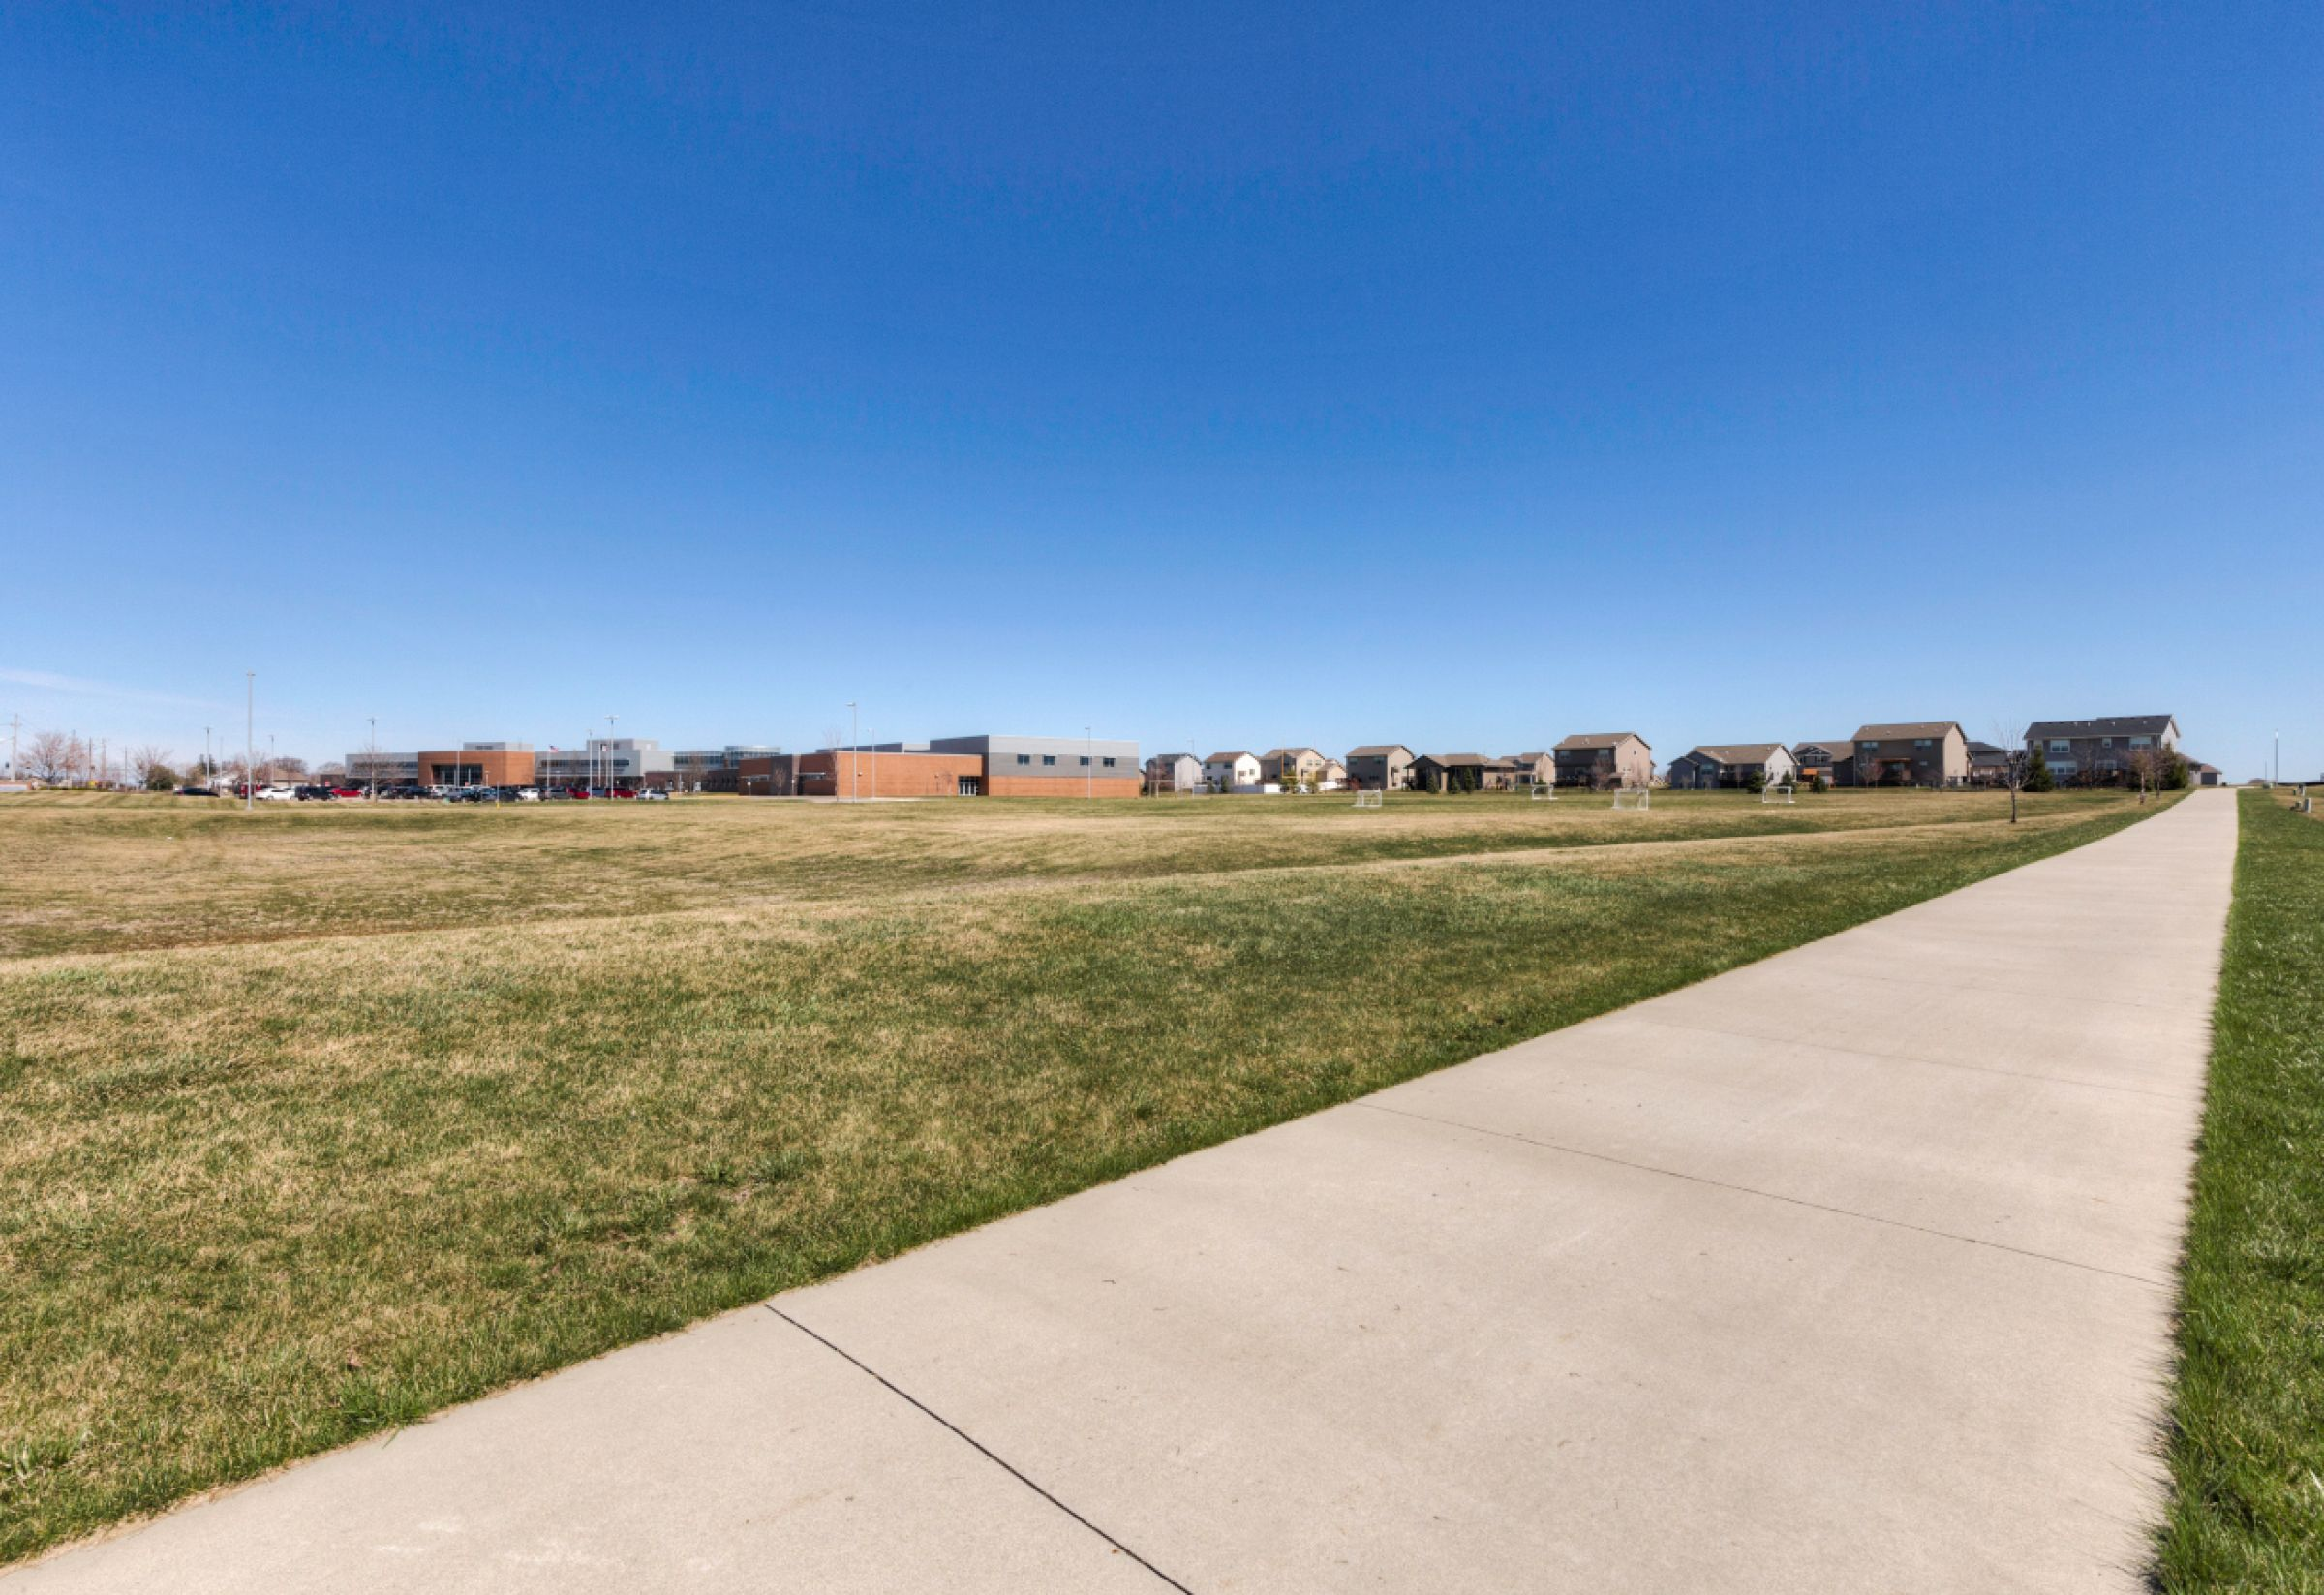 14481-325-southeast-tallgrass-lane-waukee-50263-0-2019-04-09-135942.jpg